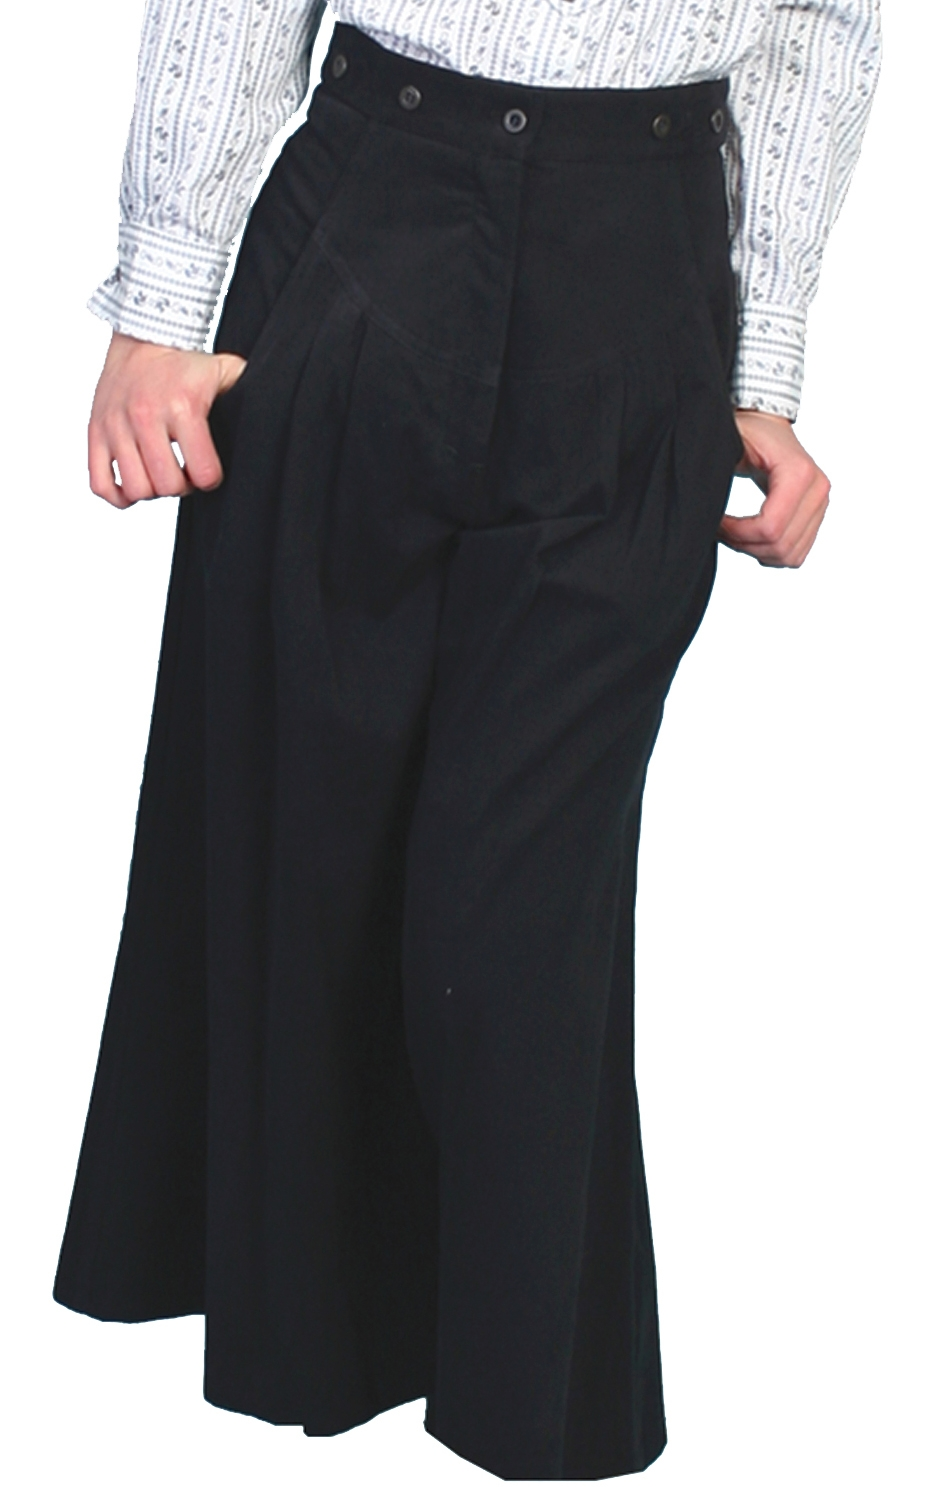 The Scully USA made Womens black pleated riding pants are an authentic look for women who love the comfort of the old west.